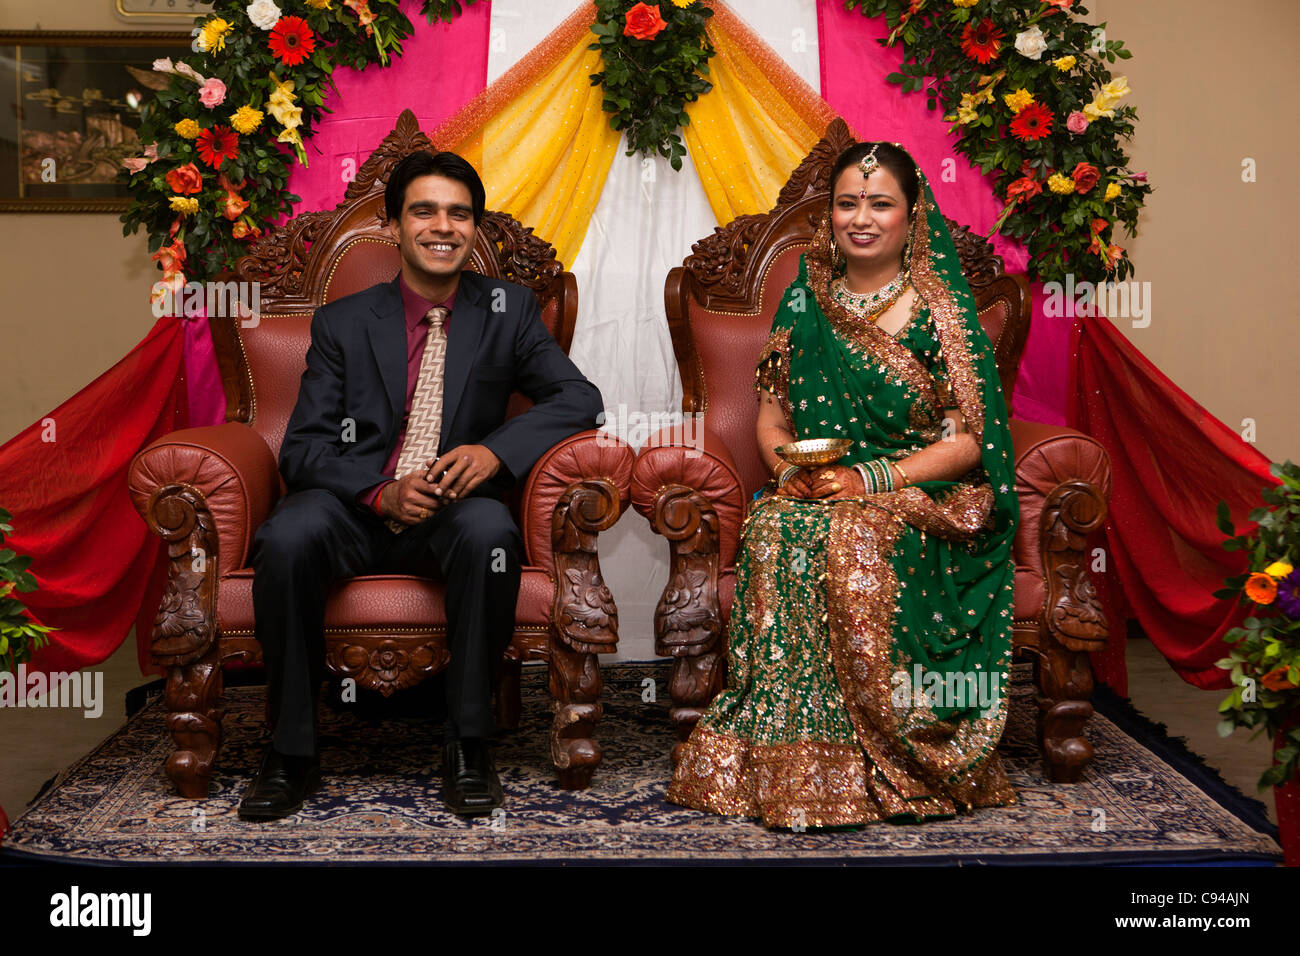 India assam guwahati weddings upper class assamese couple on india assam guwahati weddings upper class assamese couple on dias during evening wedding reception junglespirit Choice Image